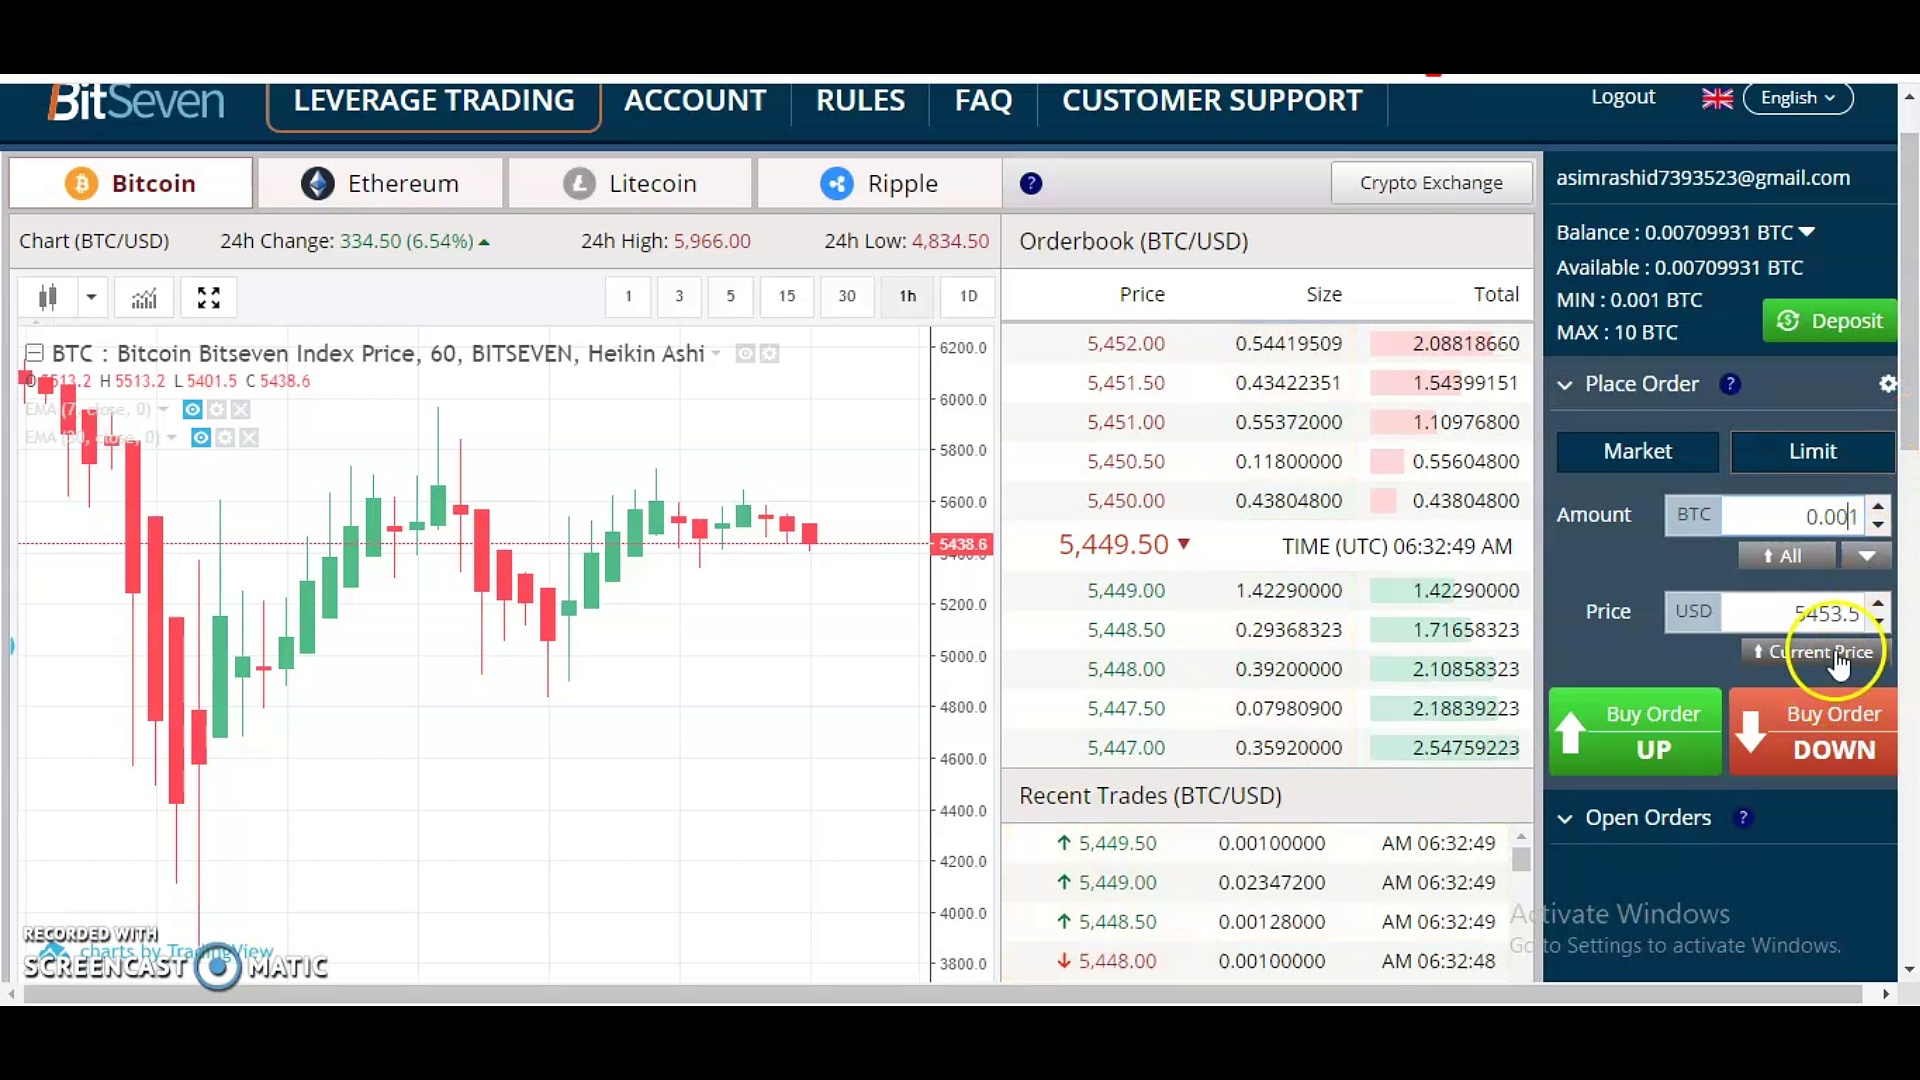 How to Start  Bitcoin Trading in BitSeven Exchange | How to Make Your First Trade in Bitseven |